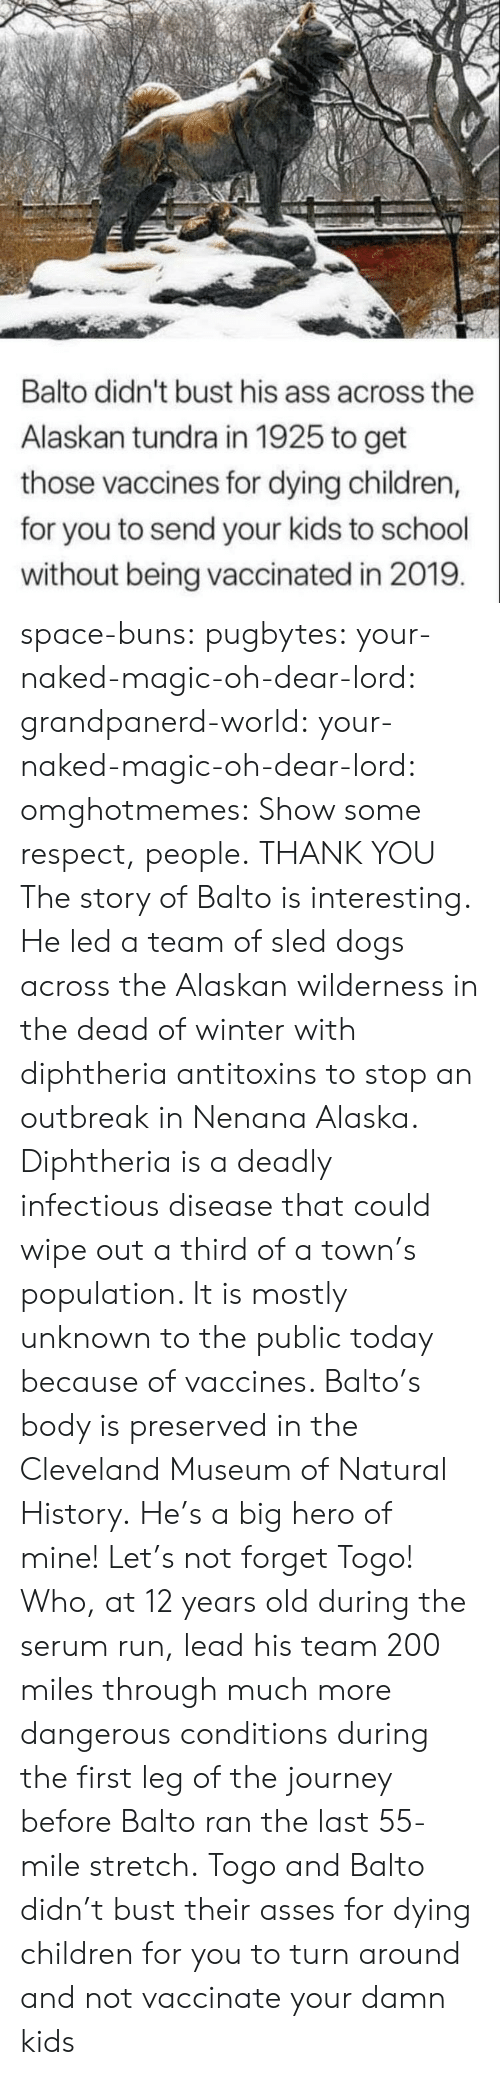 Children, Dogs, and Journey: Balto didn't bust his ass across the  Alaskan tundra in 1925 to get  those vaccines for dying children,  for you to send your kids to school  without being vaccinated in 2019 space-buns:  pugbytes:   your-naked-magic-oh-dear-lord:  grandpanerd-world:   your-naked-magic-oh-dear-lord:  omghotmemes: Show some respect, people.  THANK YOU   The story of Balto is interesting. He led a team of sled dogs across the Alaskan wilderness in the dead of winter with diphtheria antitoxins to stop an outbreak in Nenana Alaska. Diphtheria is a deadly infectious disease that could wipe out a third of a town's population. It is mostly unknown to the public today because of vaccines. Balto's body is preserved in the Cleveland Museum of Natural History.   He's a big hero of mine!   Let's not forget Togo! Who, at 12 years old during the serum run, lead his team 200 miles through much more dangerous conditions during the first leg of the journey before Balto ran the last 55-mile stretch.   Togo and Balto didn't bust their asses for dying children for you to turn around and not vaccinate your damn kids